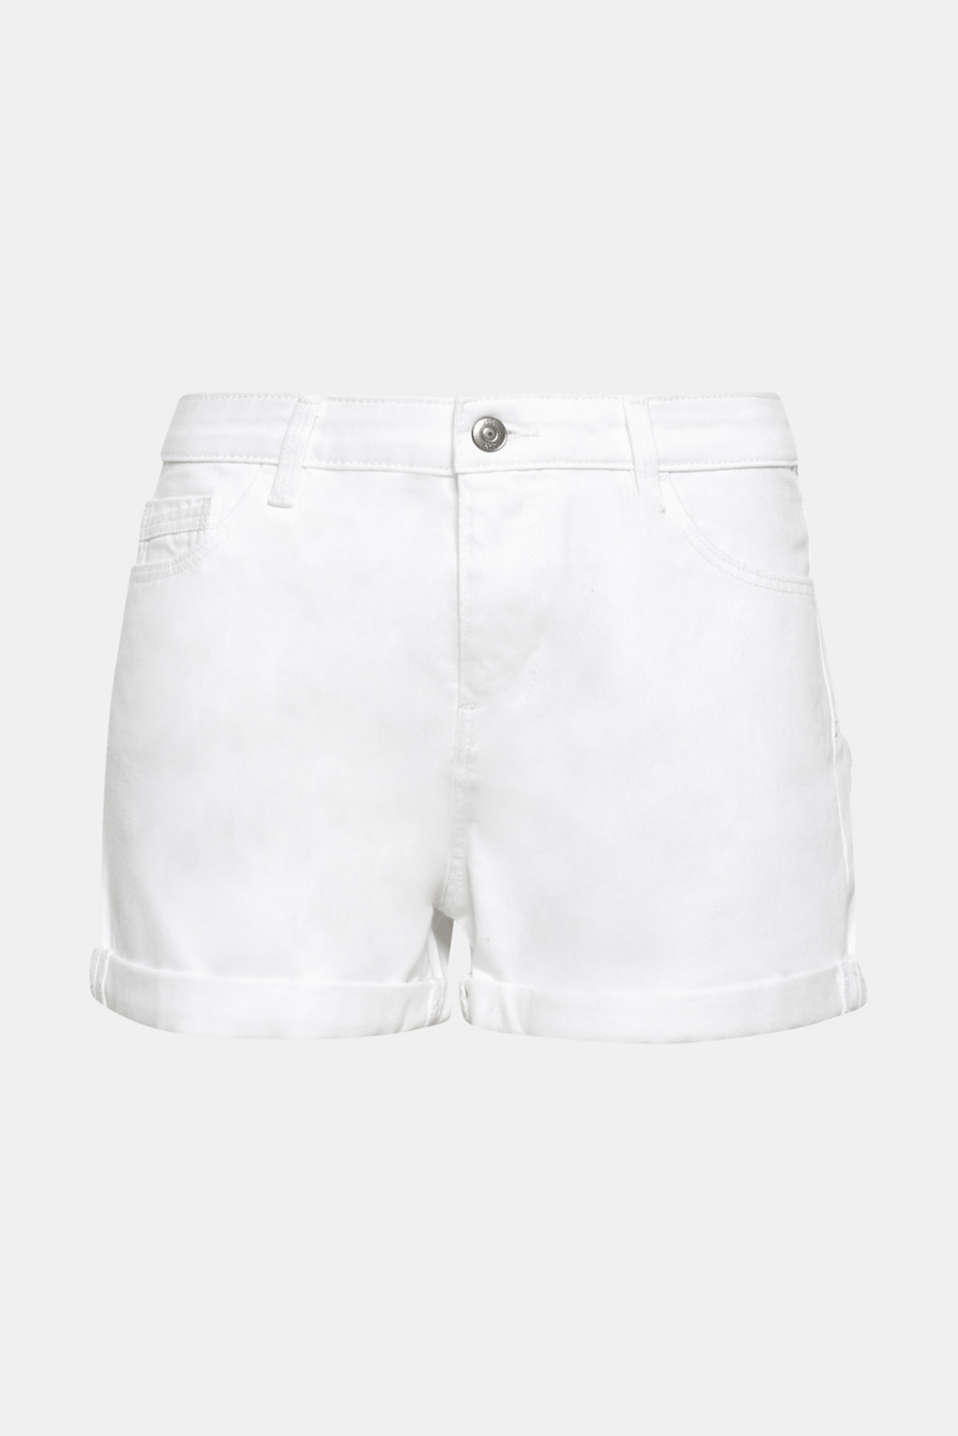 The ultimate basic for your summer wardrobe: pure white denim shorts made of pure cotton.